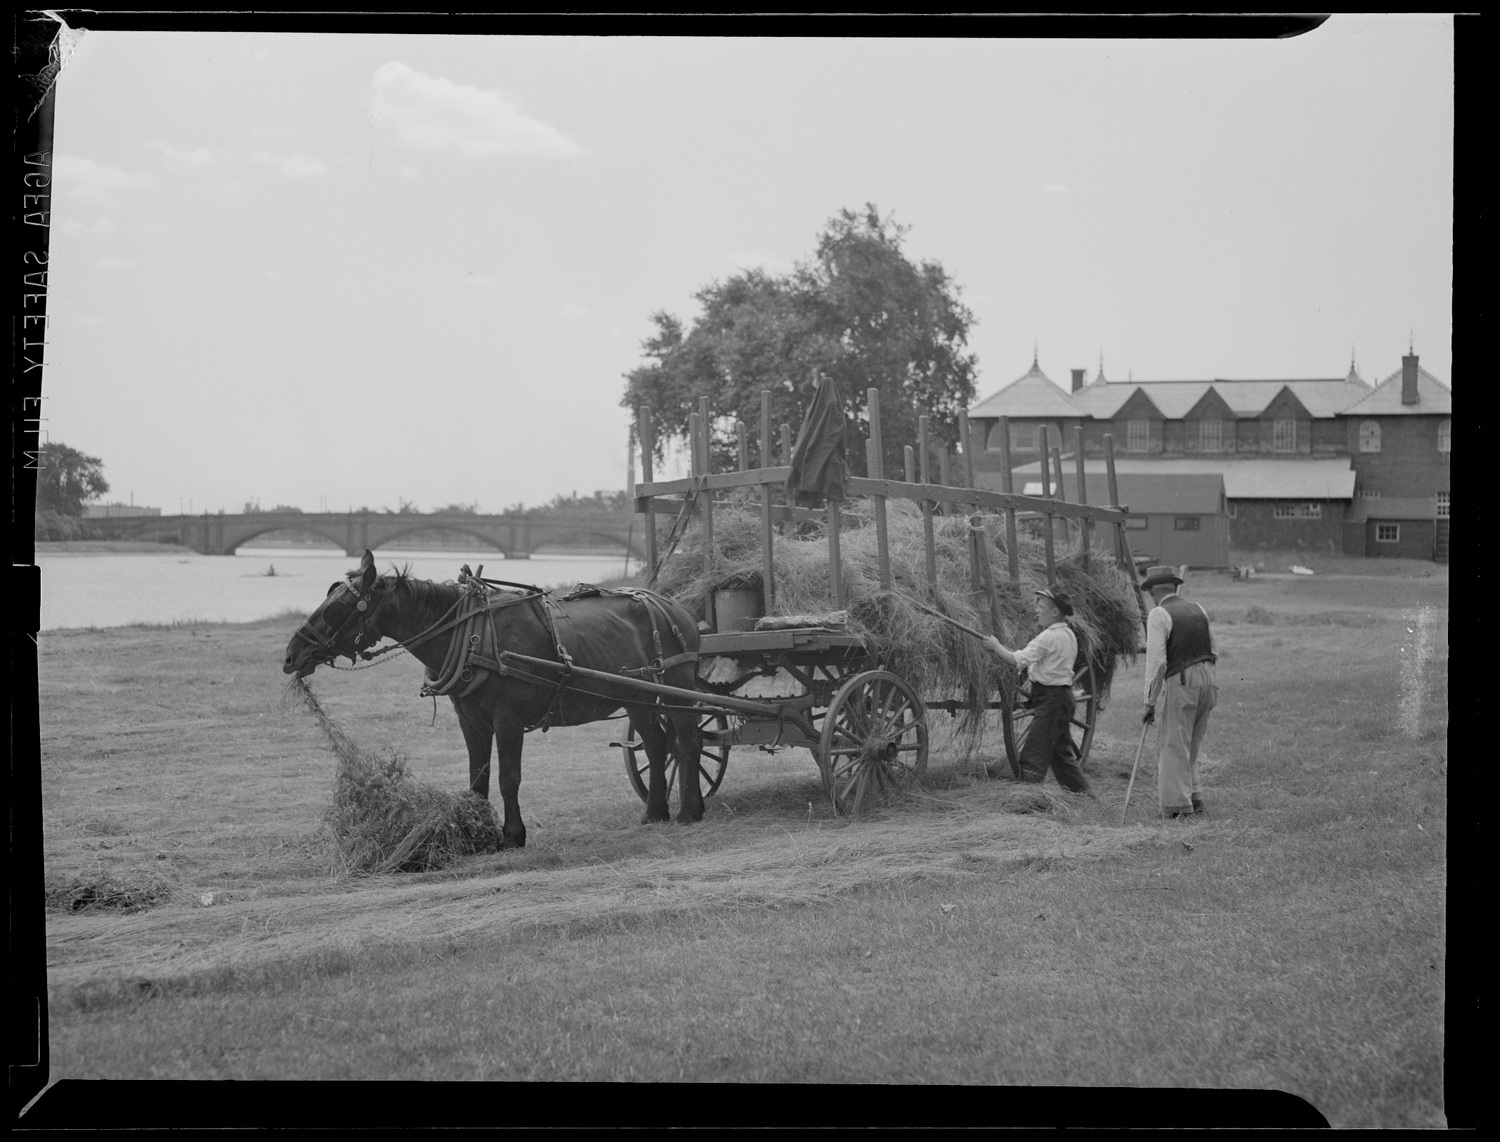 In a photo taken circa 1934–1956, farmers collect hay on a low-lying Allston marsh near where Cumnock Fields and the Harvard Athletic Complex stand today. Anderson Memorial Bridge and Newell Boathouse are pictured in the background.